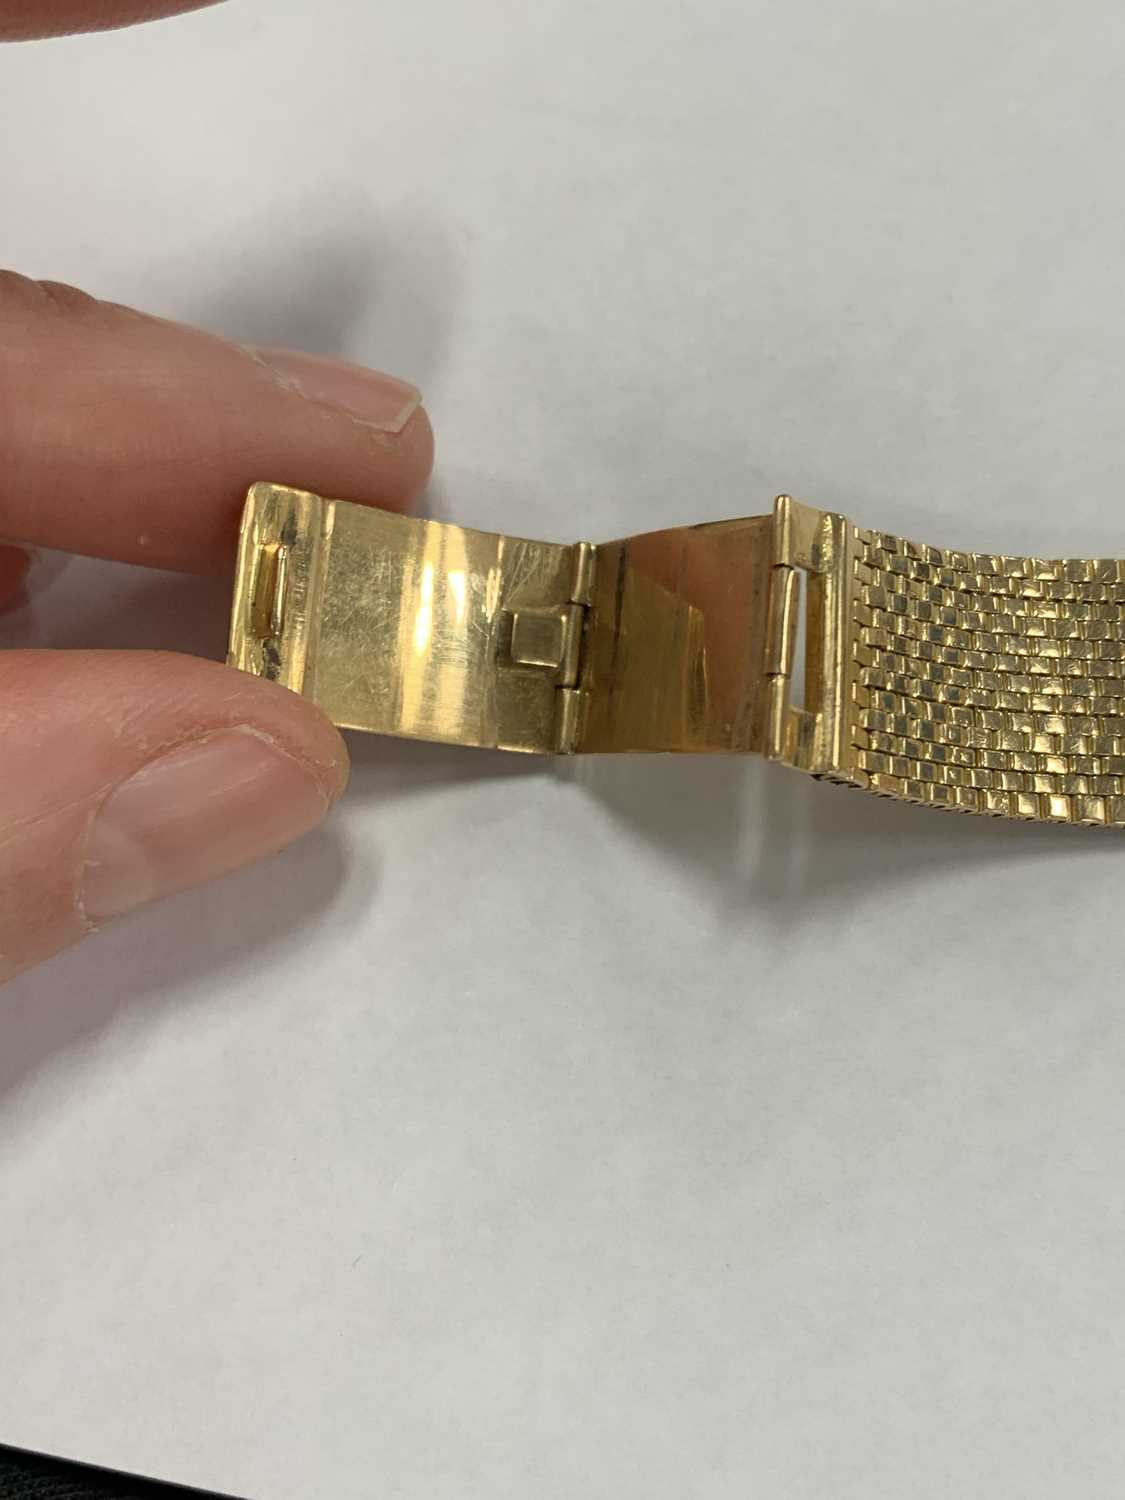 A Gentleman's gold plated Omega wristwatch with yellow metal bracelet - Image 5 of 9